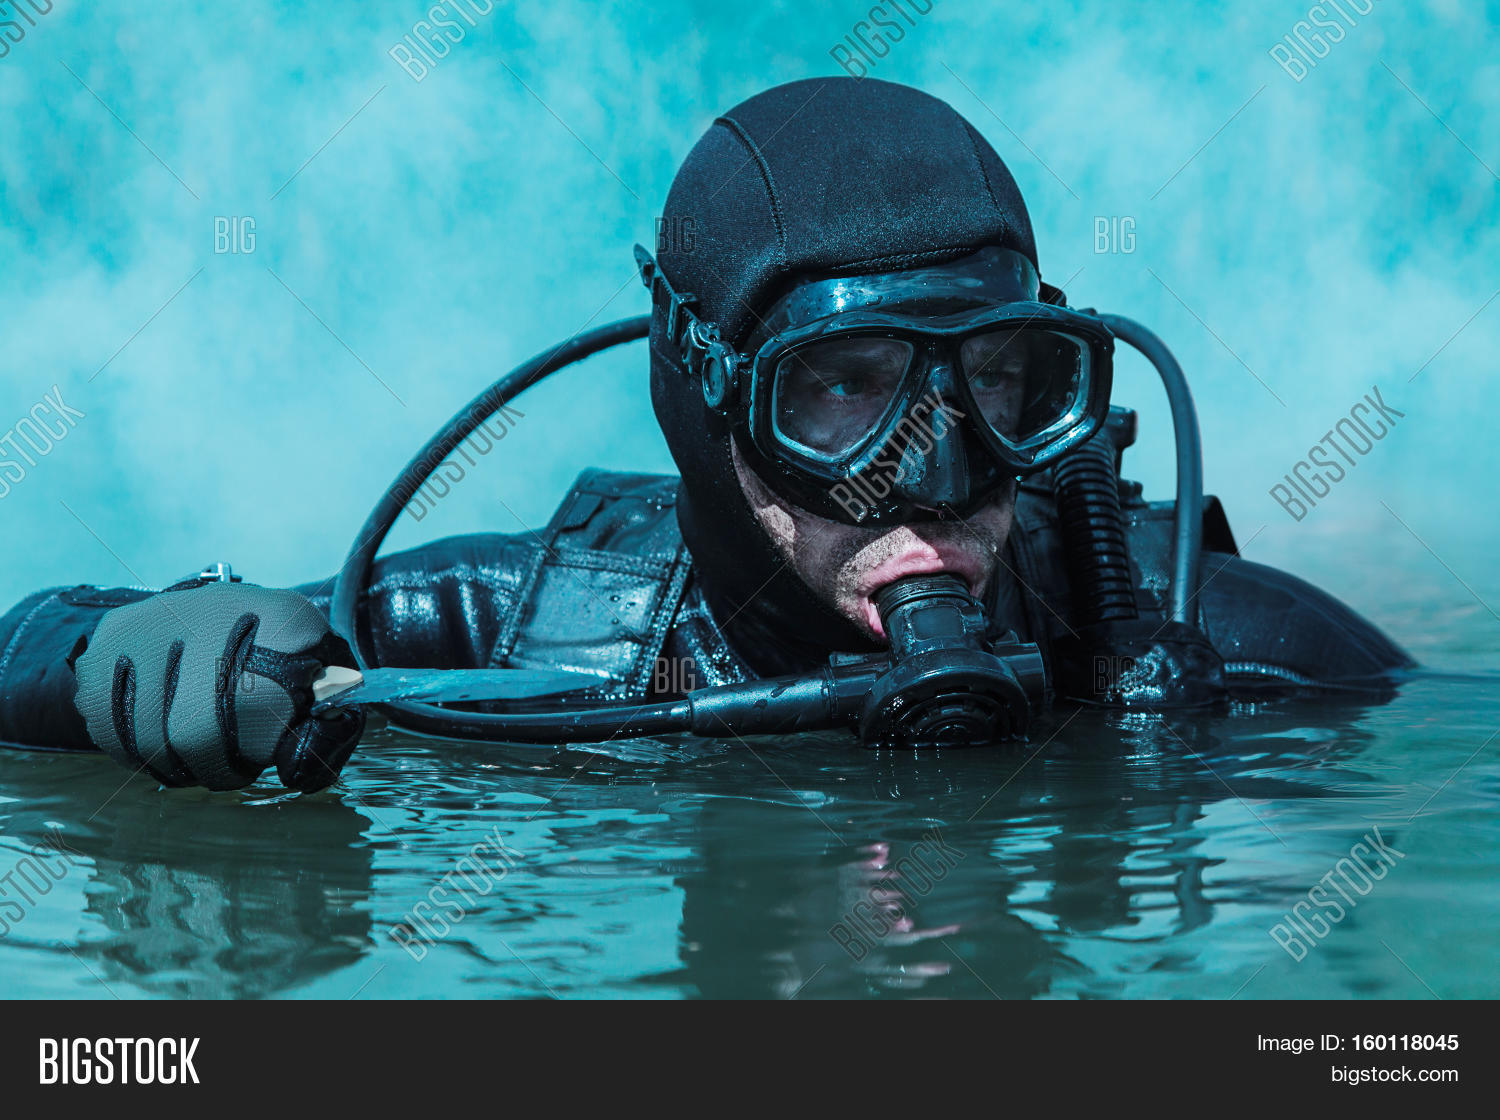 Navy seal frogman complete diving image photo bigstock - Navy seal dive gear ...